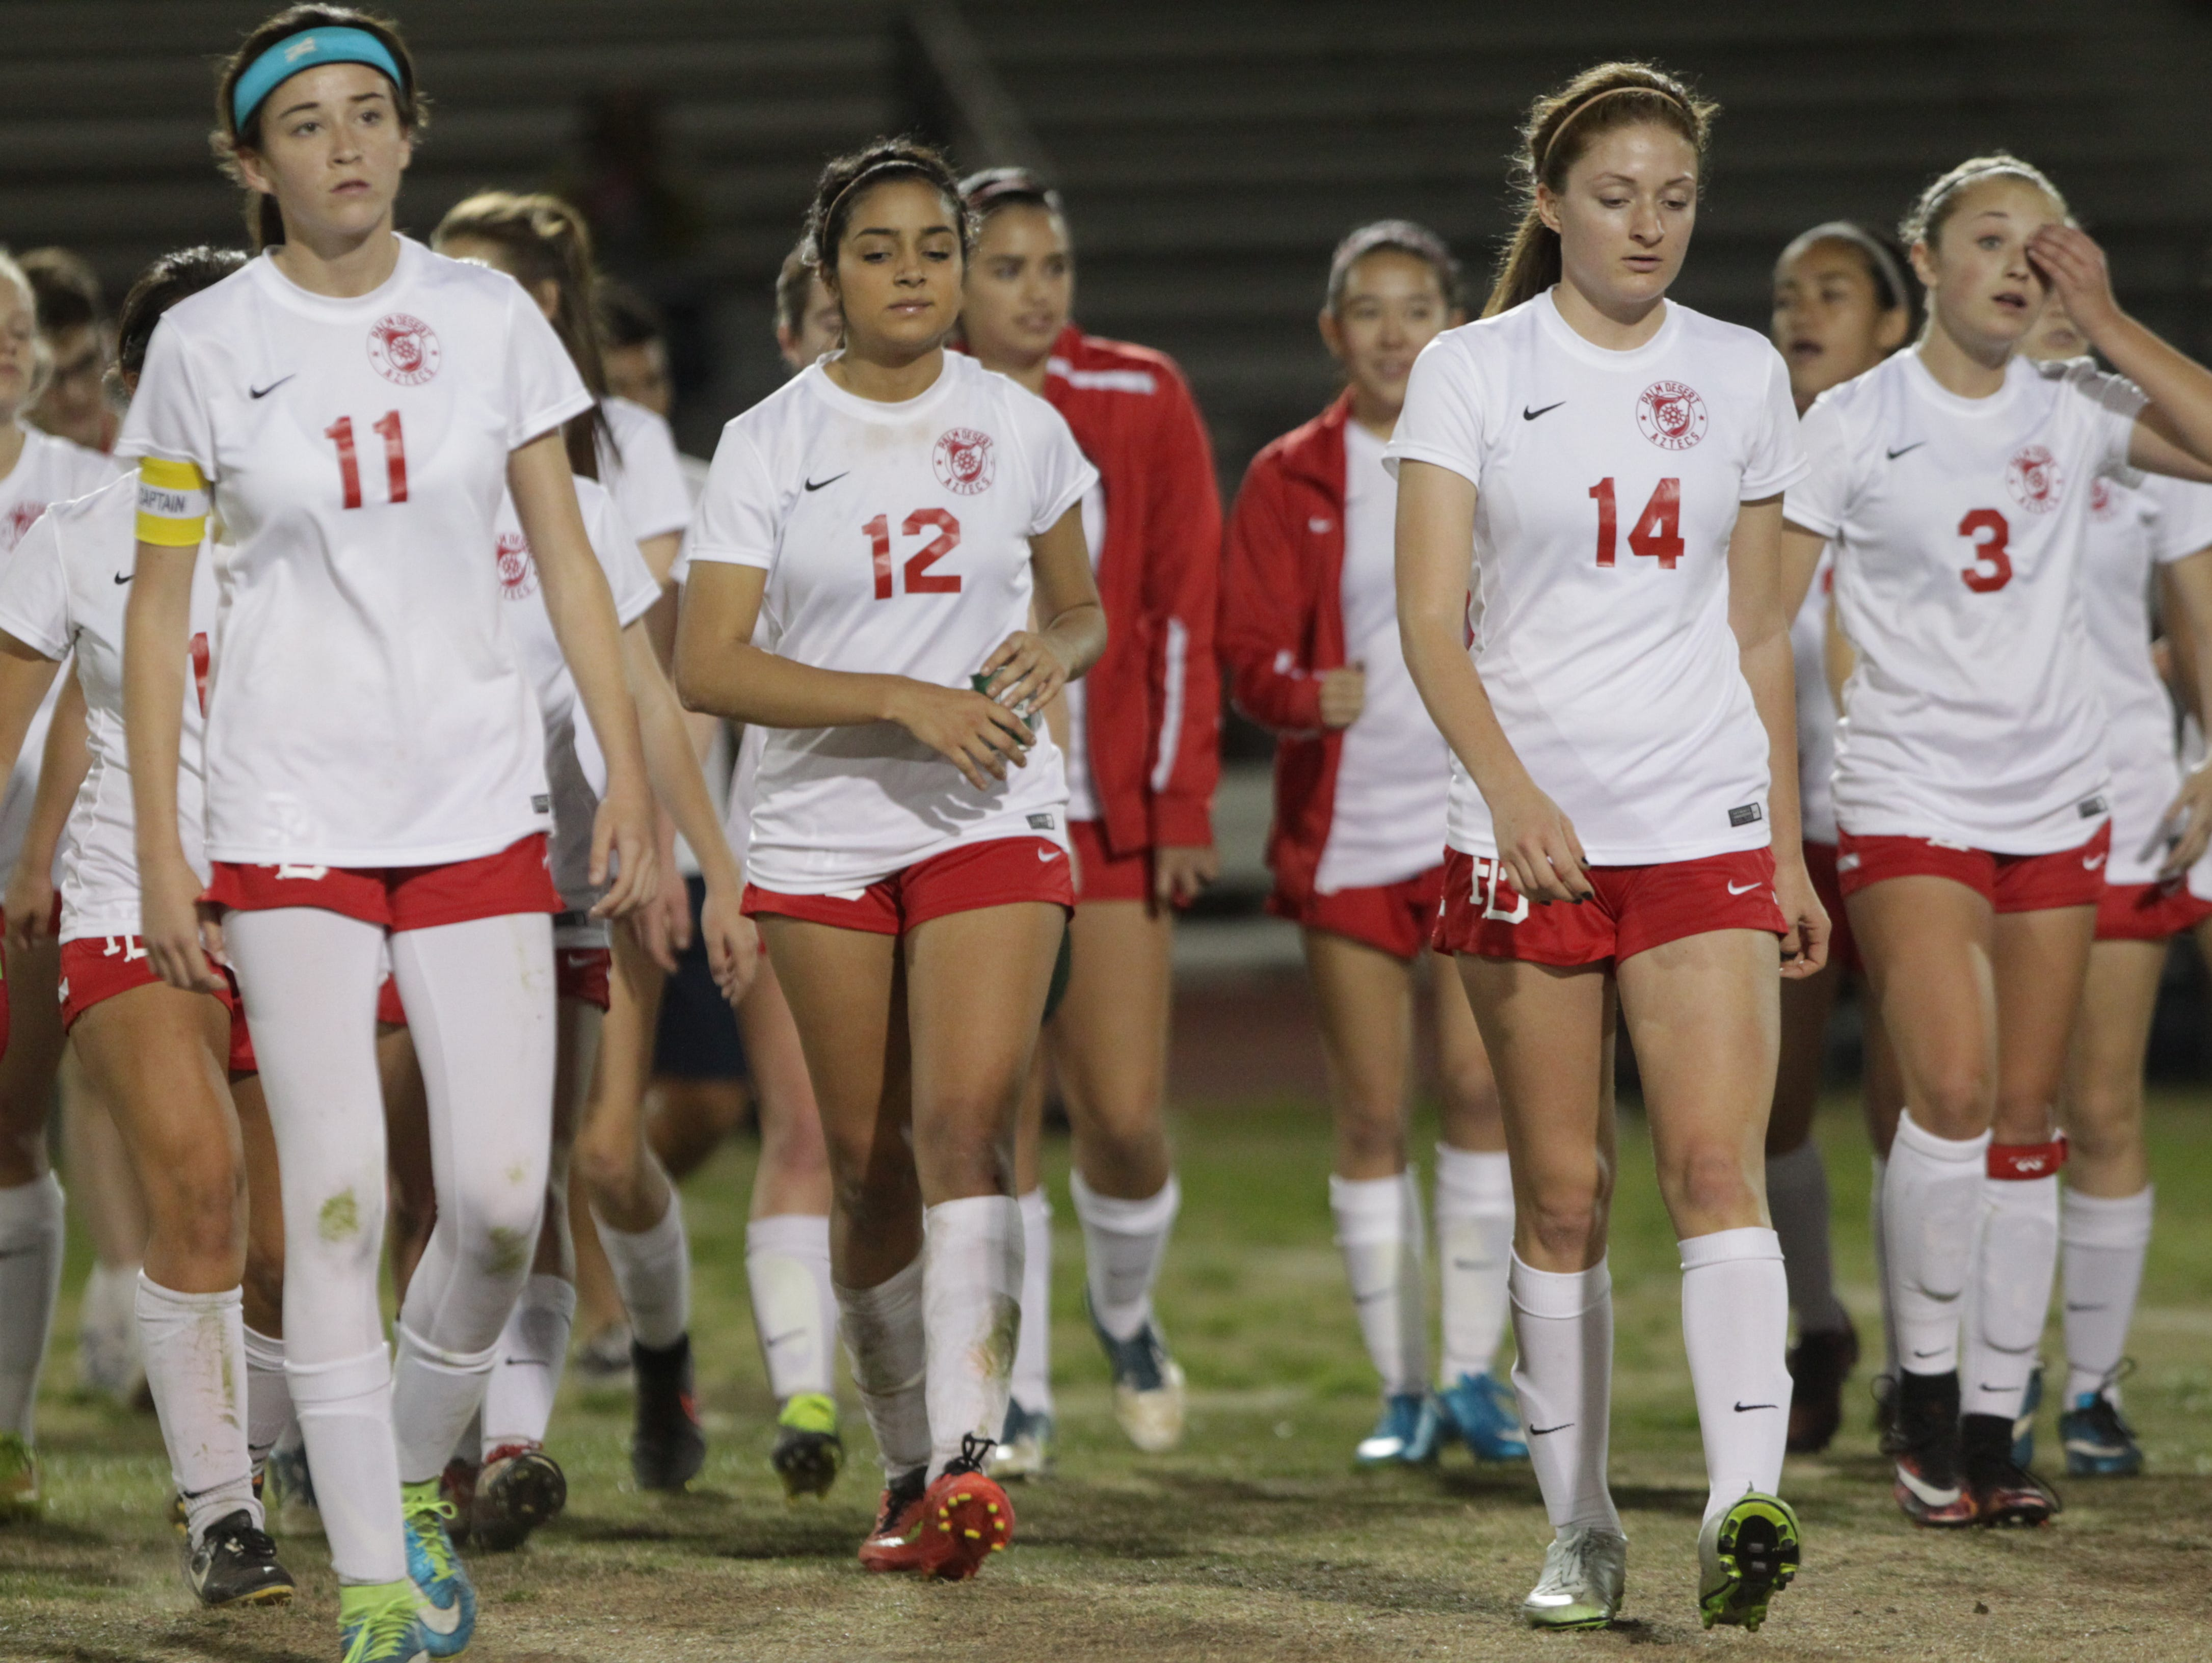 Dejected Palm Desert High School players walk back after losing their CIF Game 1-0 to California High School of Whittier at Palm Desert.